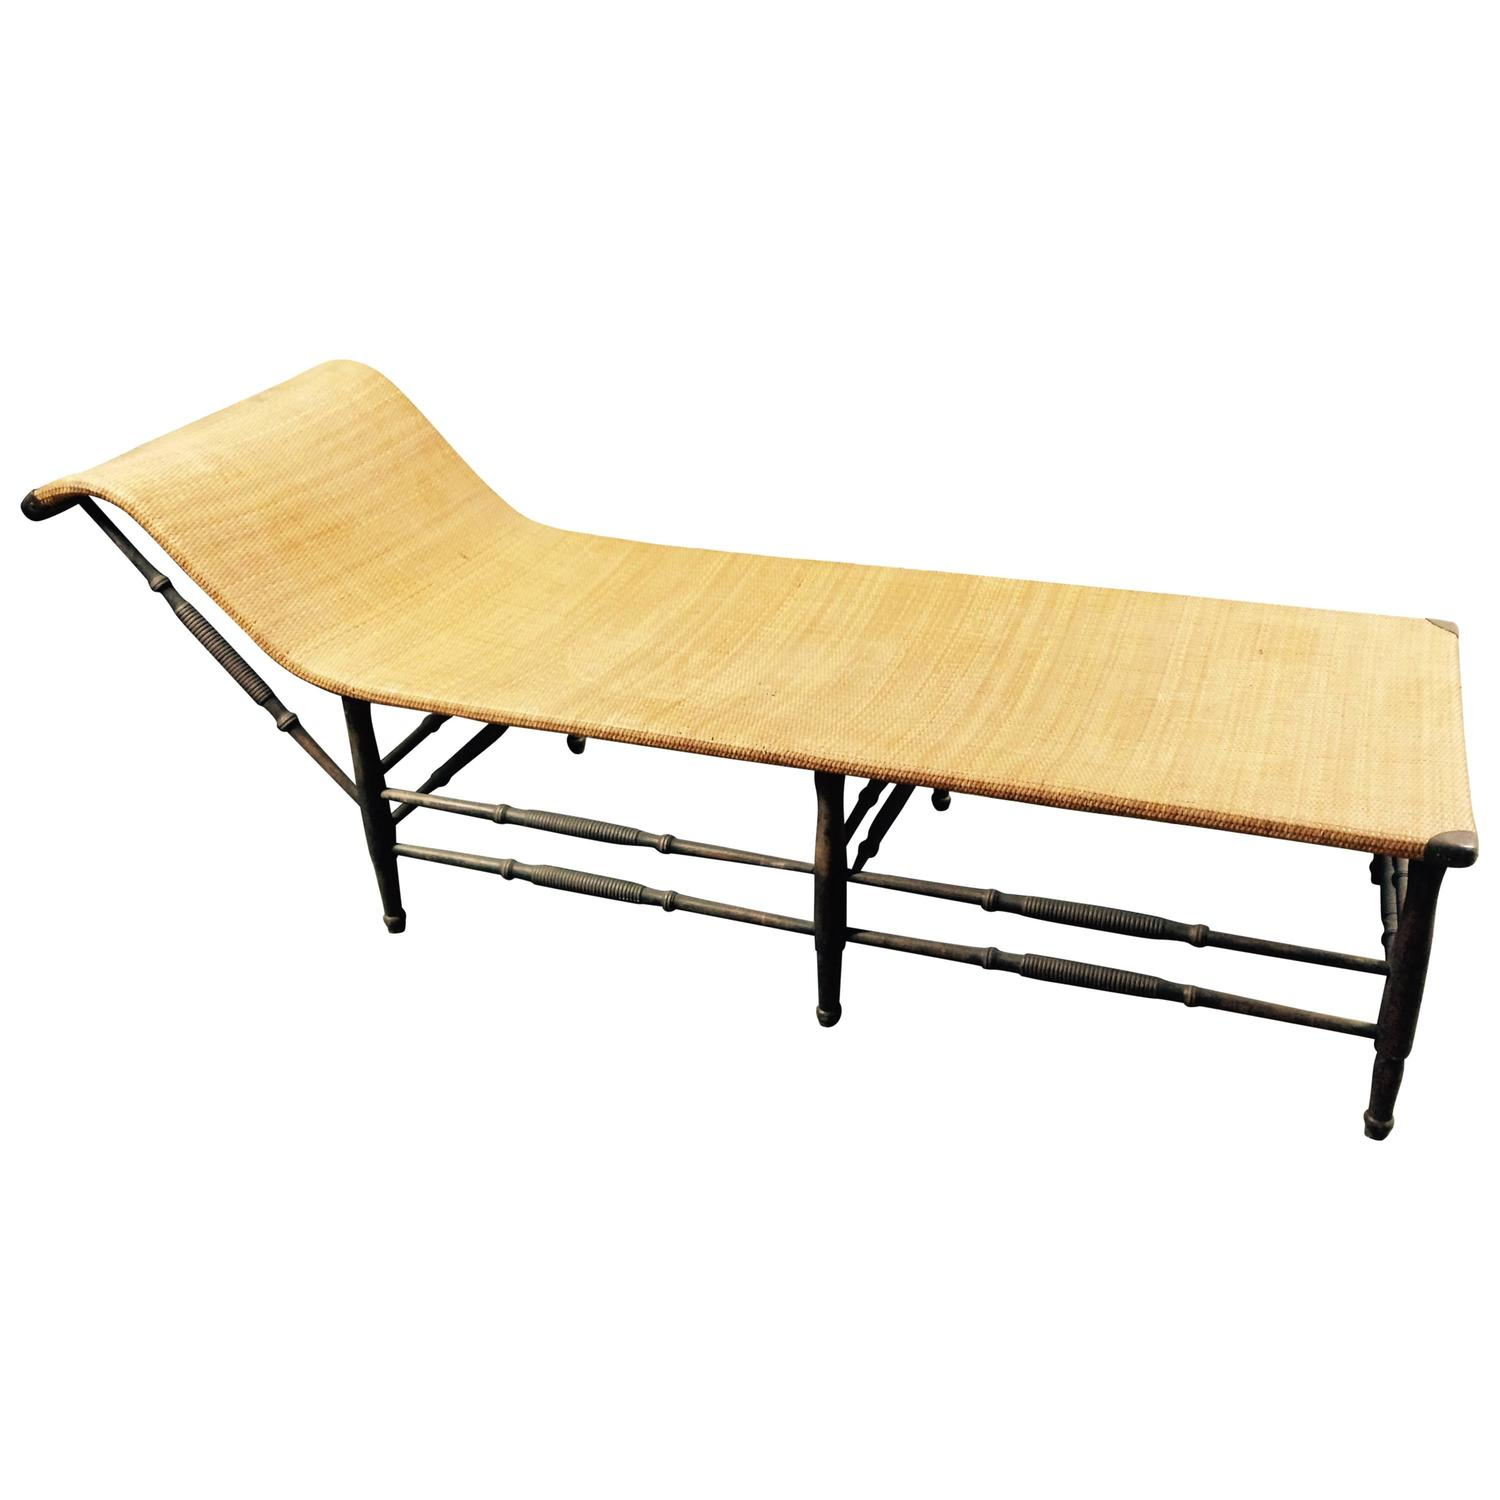 Antique rattan chaise longue for sale at 1stdibs for Antique wicker chaise